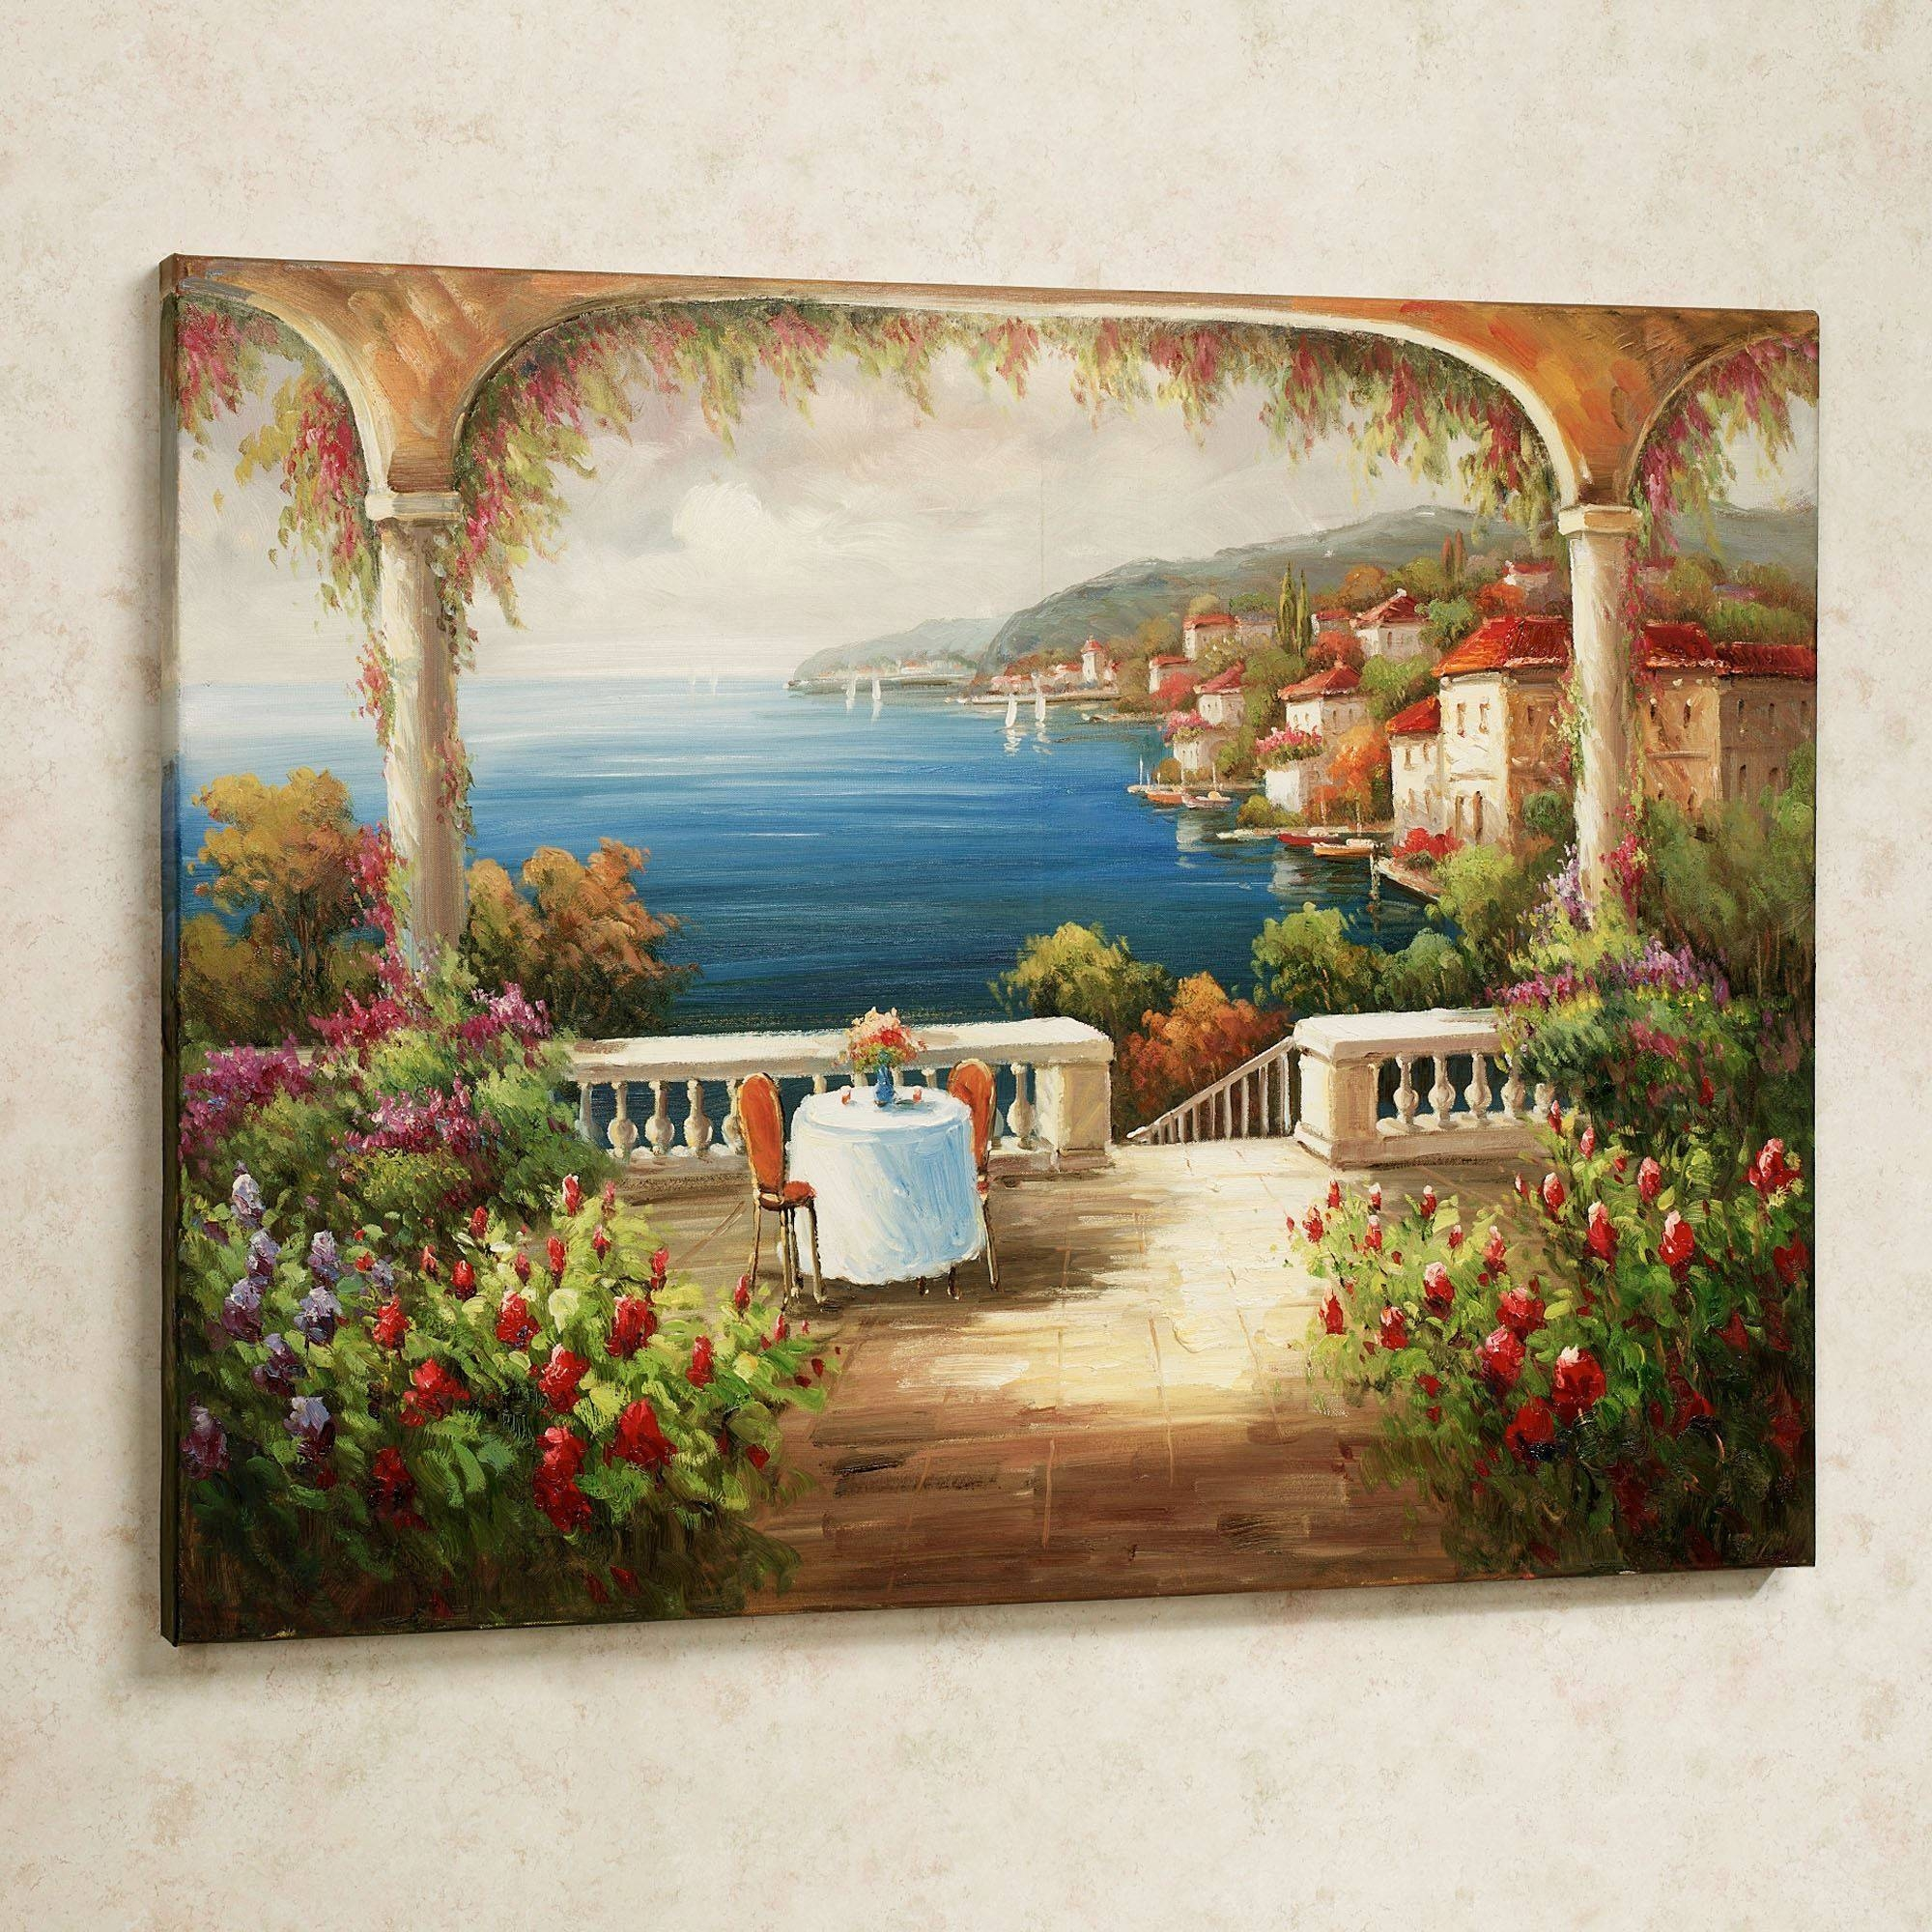 Kitchen : Large Artwork For Wall Wall Pictures For Living Room For Current Tuscany Wall Art (View 5 of 20)